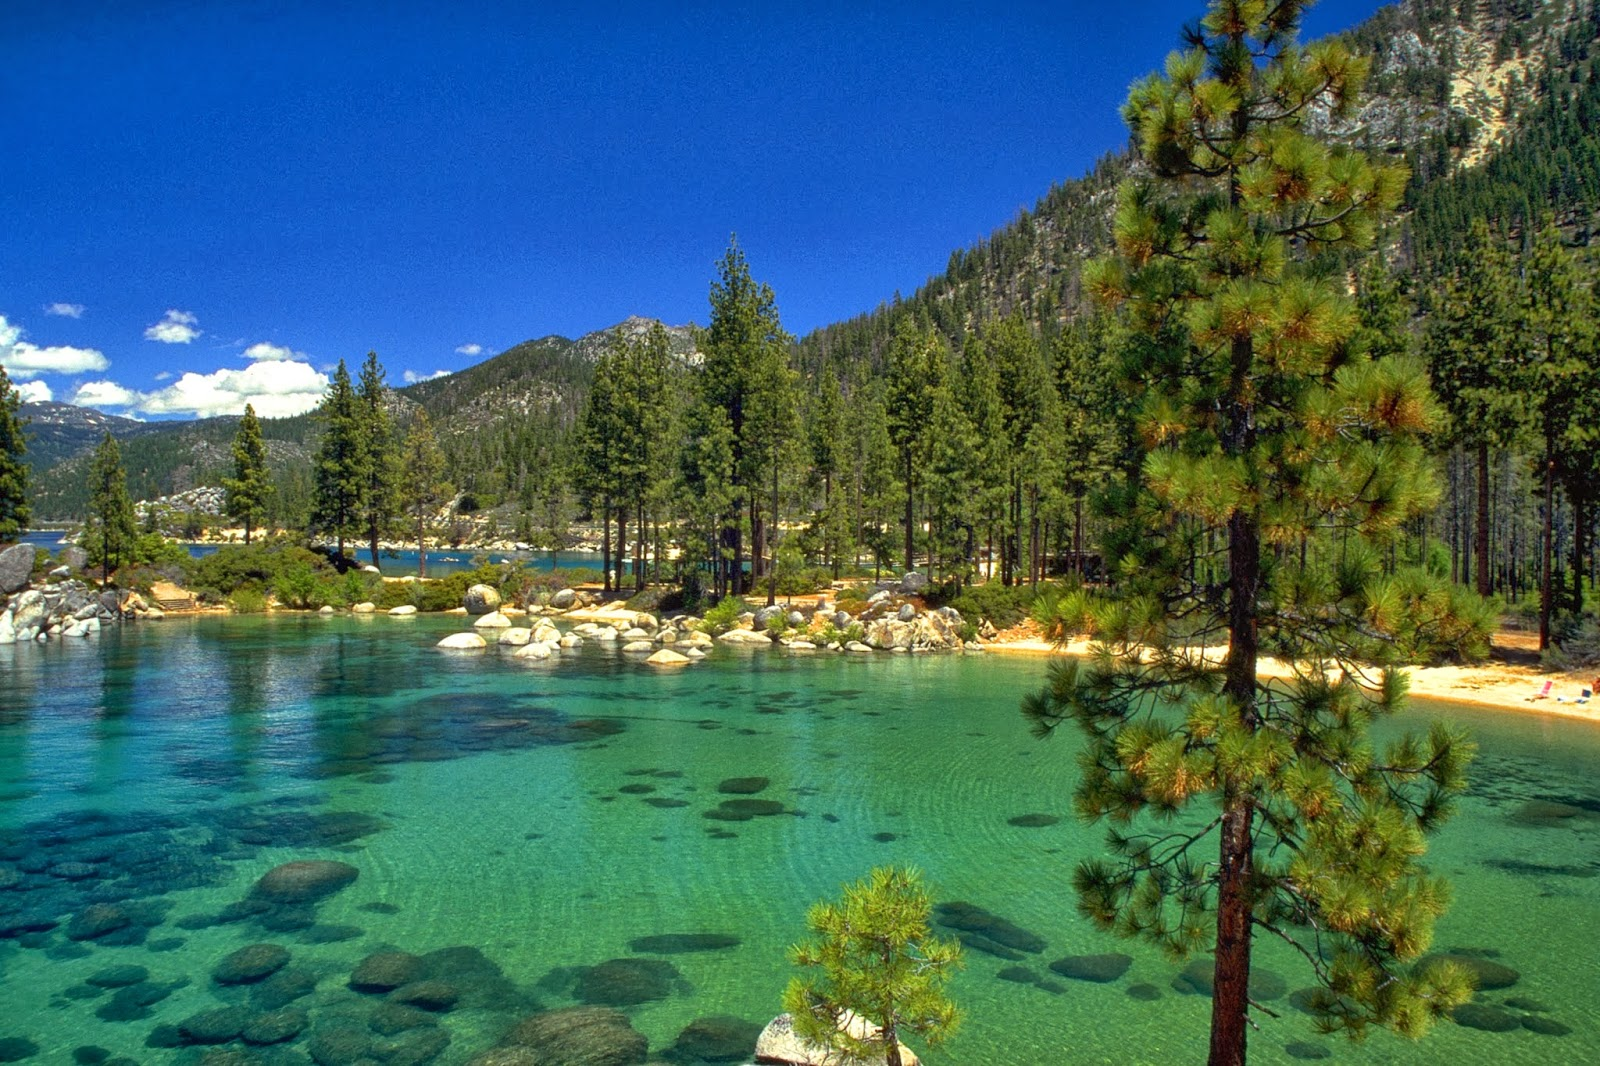 wallpapers lake tahoe california nevada wallpaper lake tahoe 1600x1066